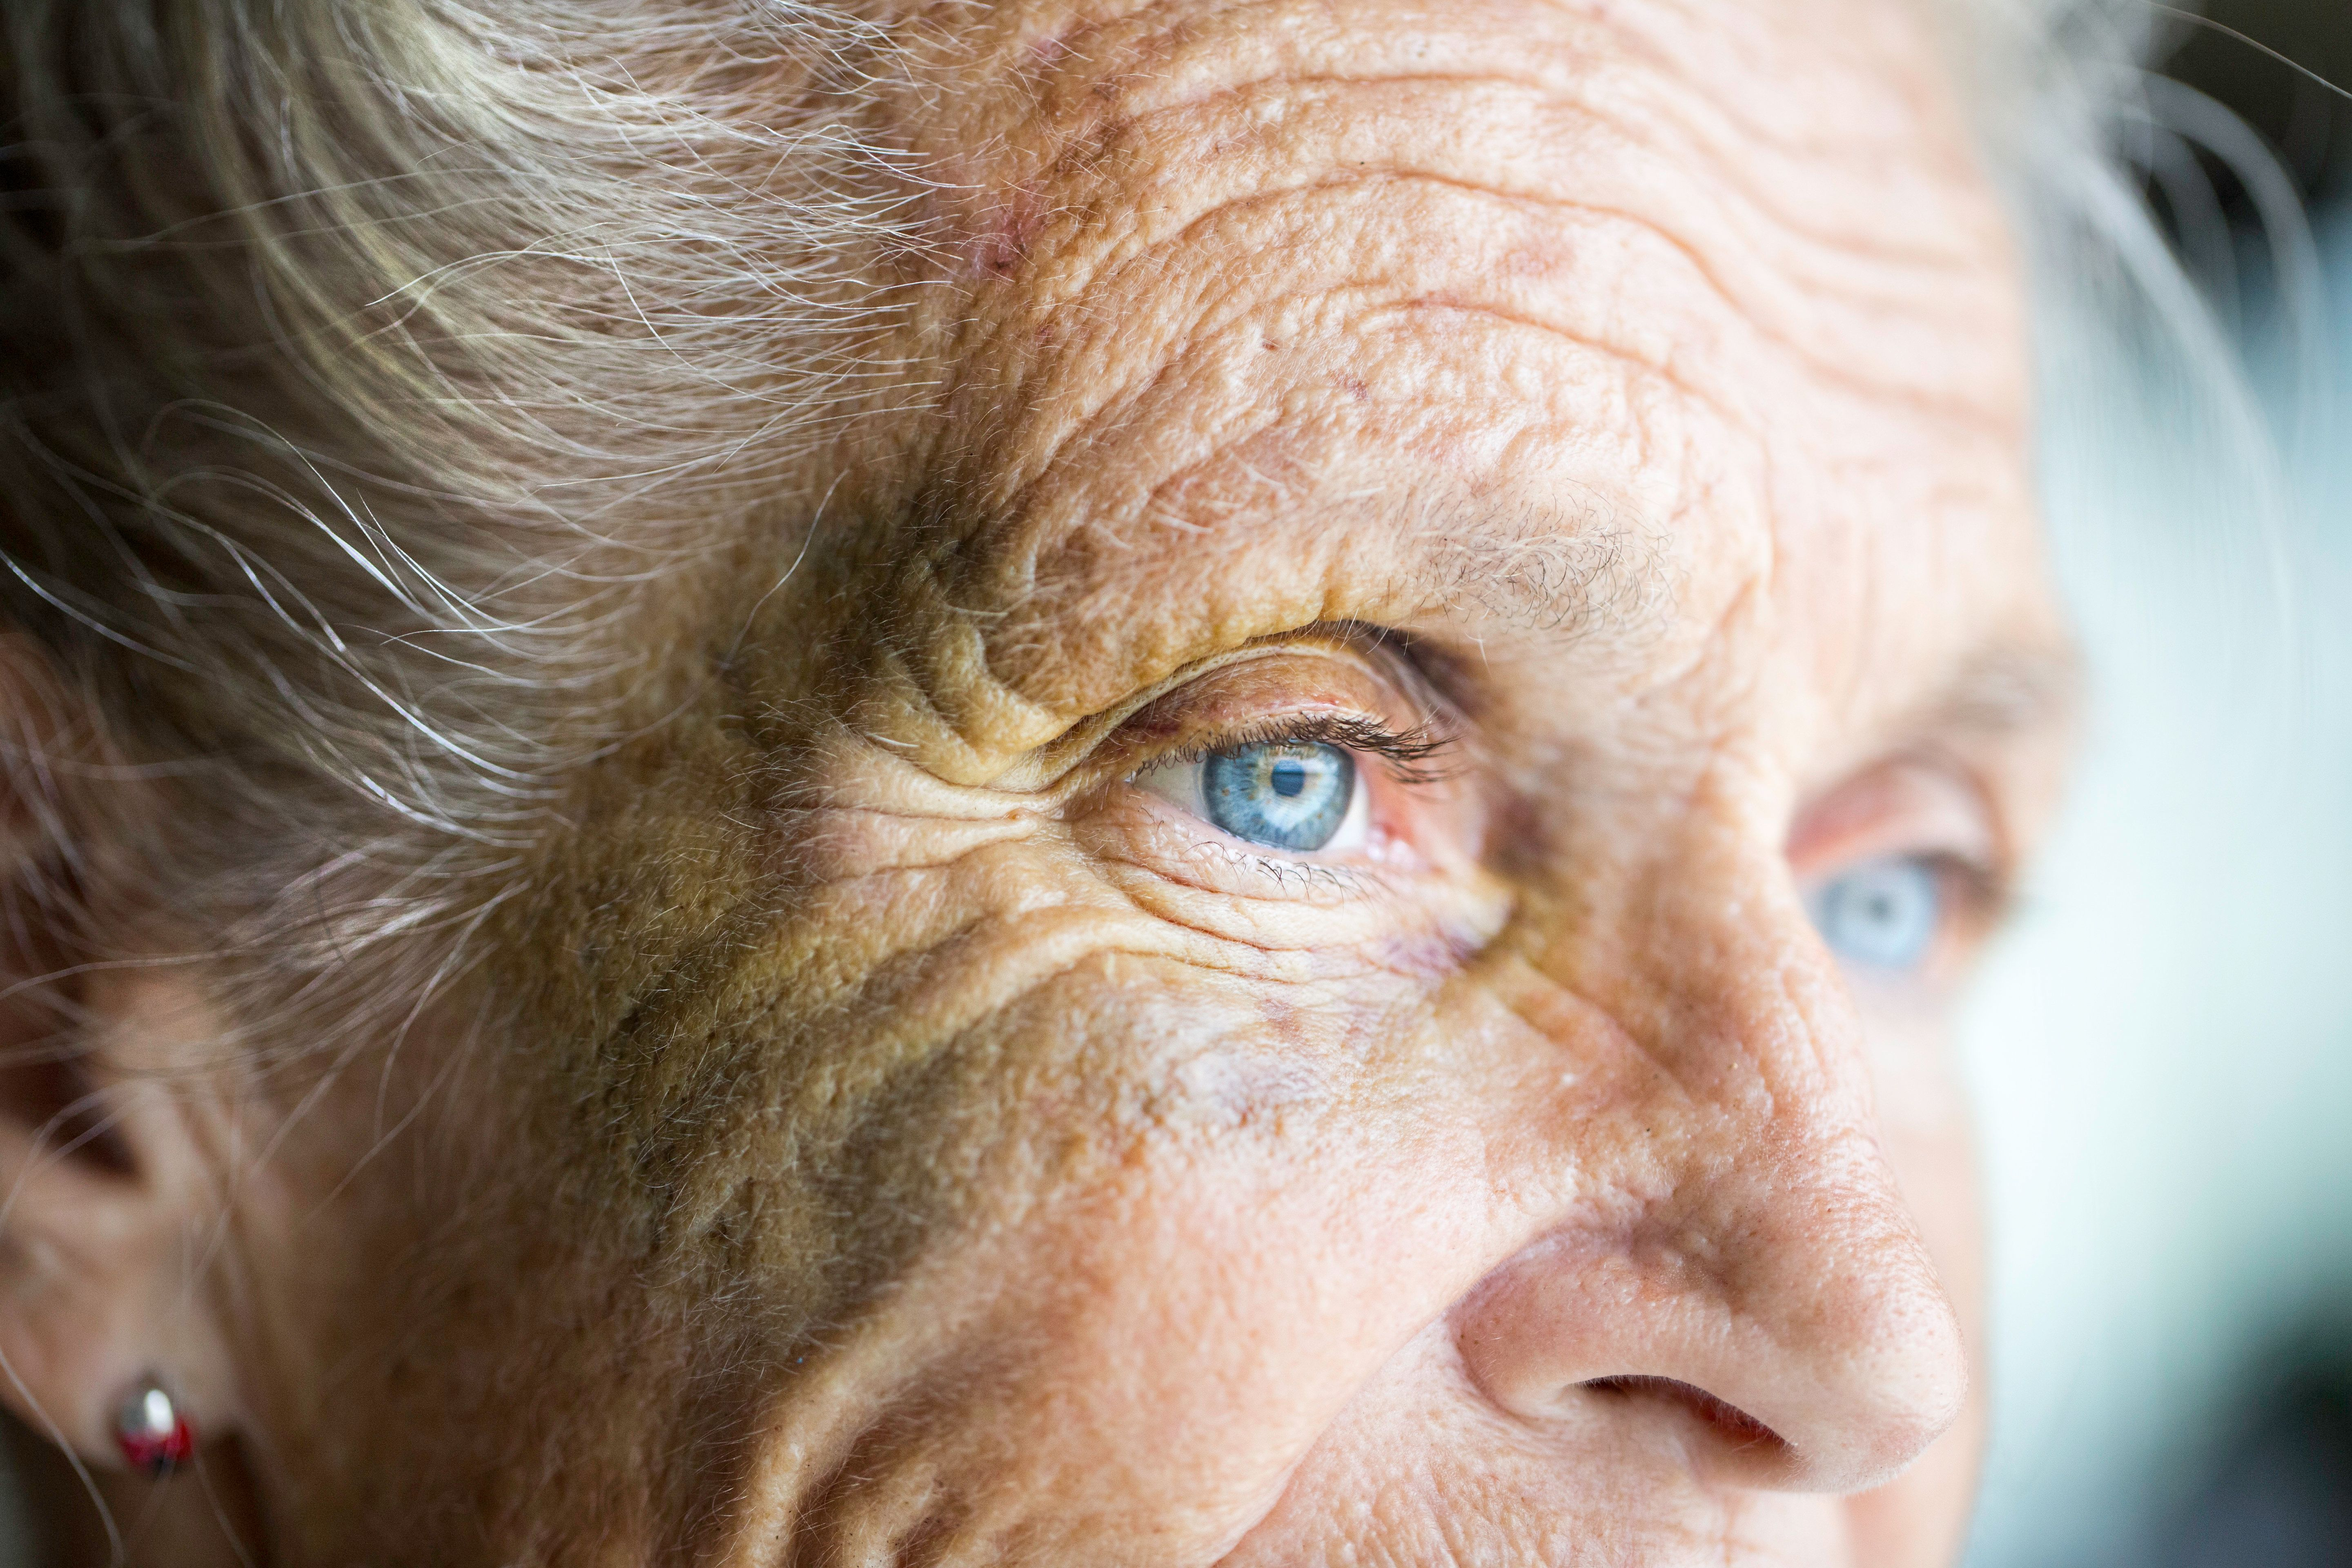 Scientists Identify Visual Symptoms That Could Mark The Start Of